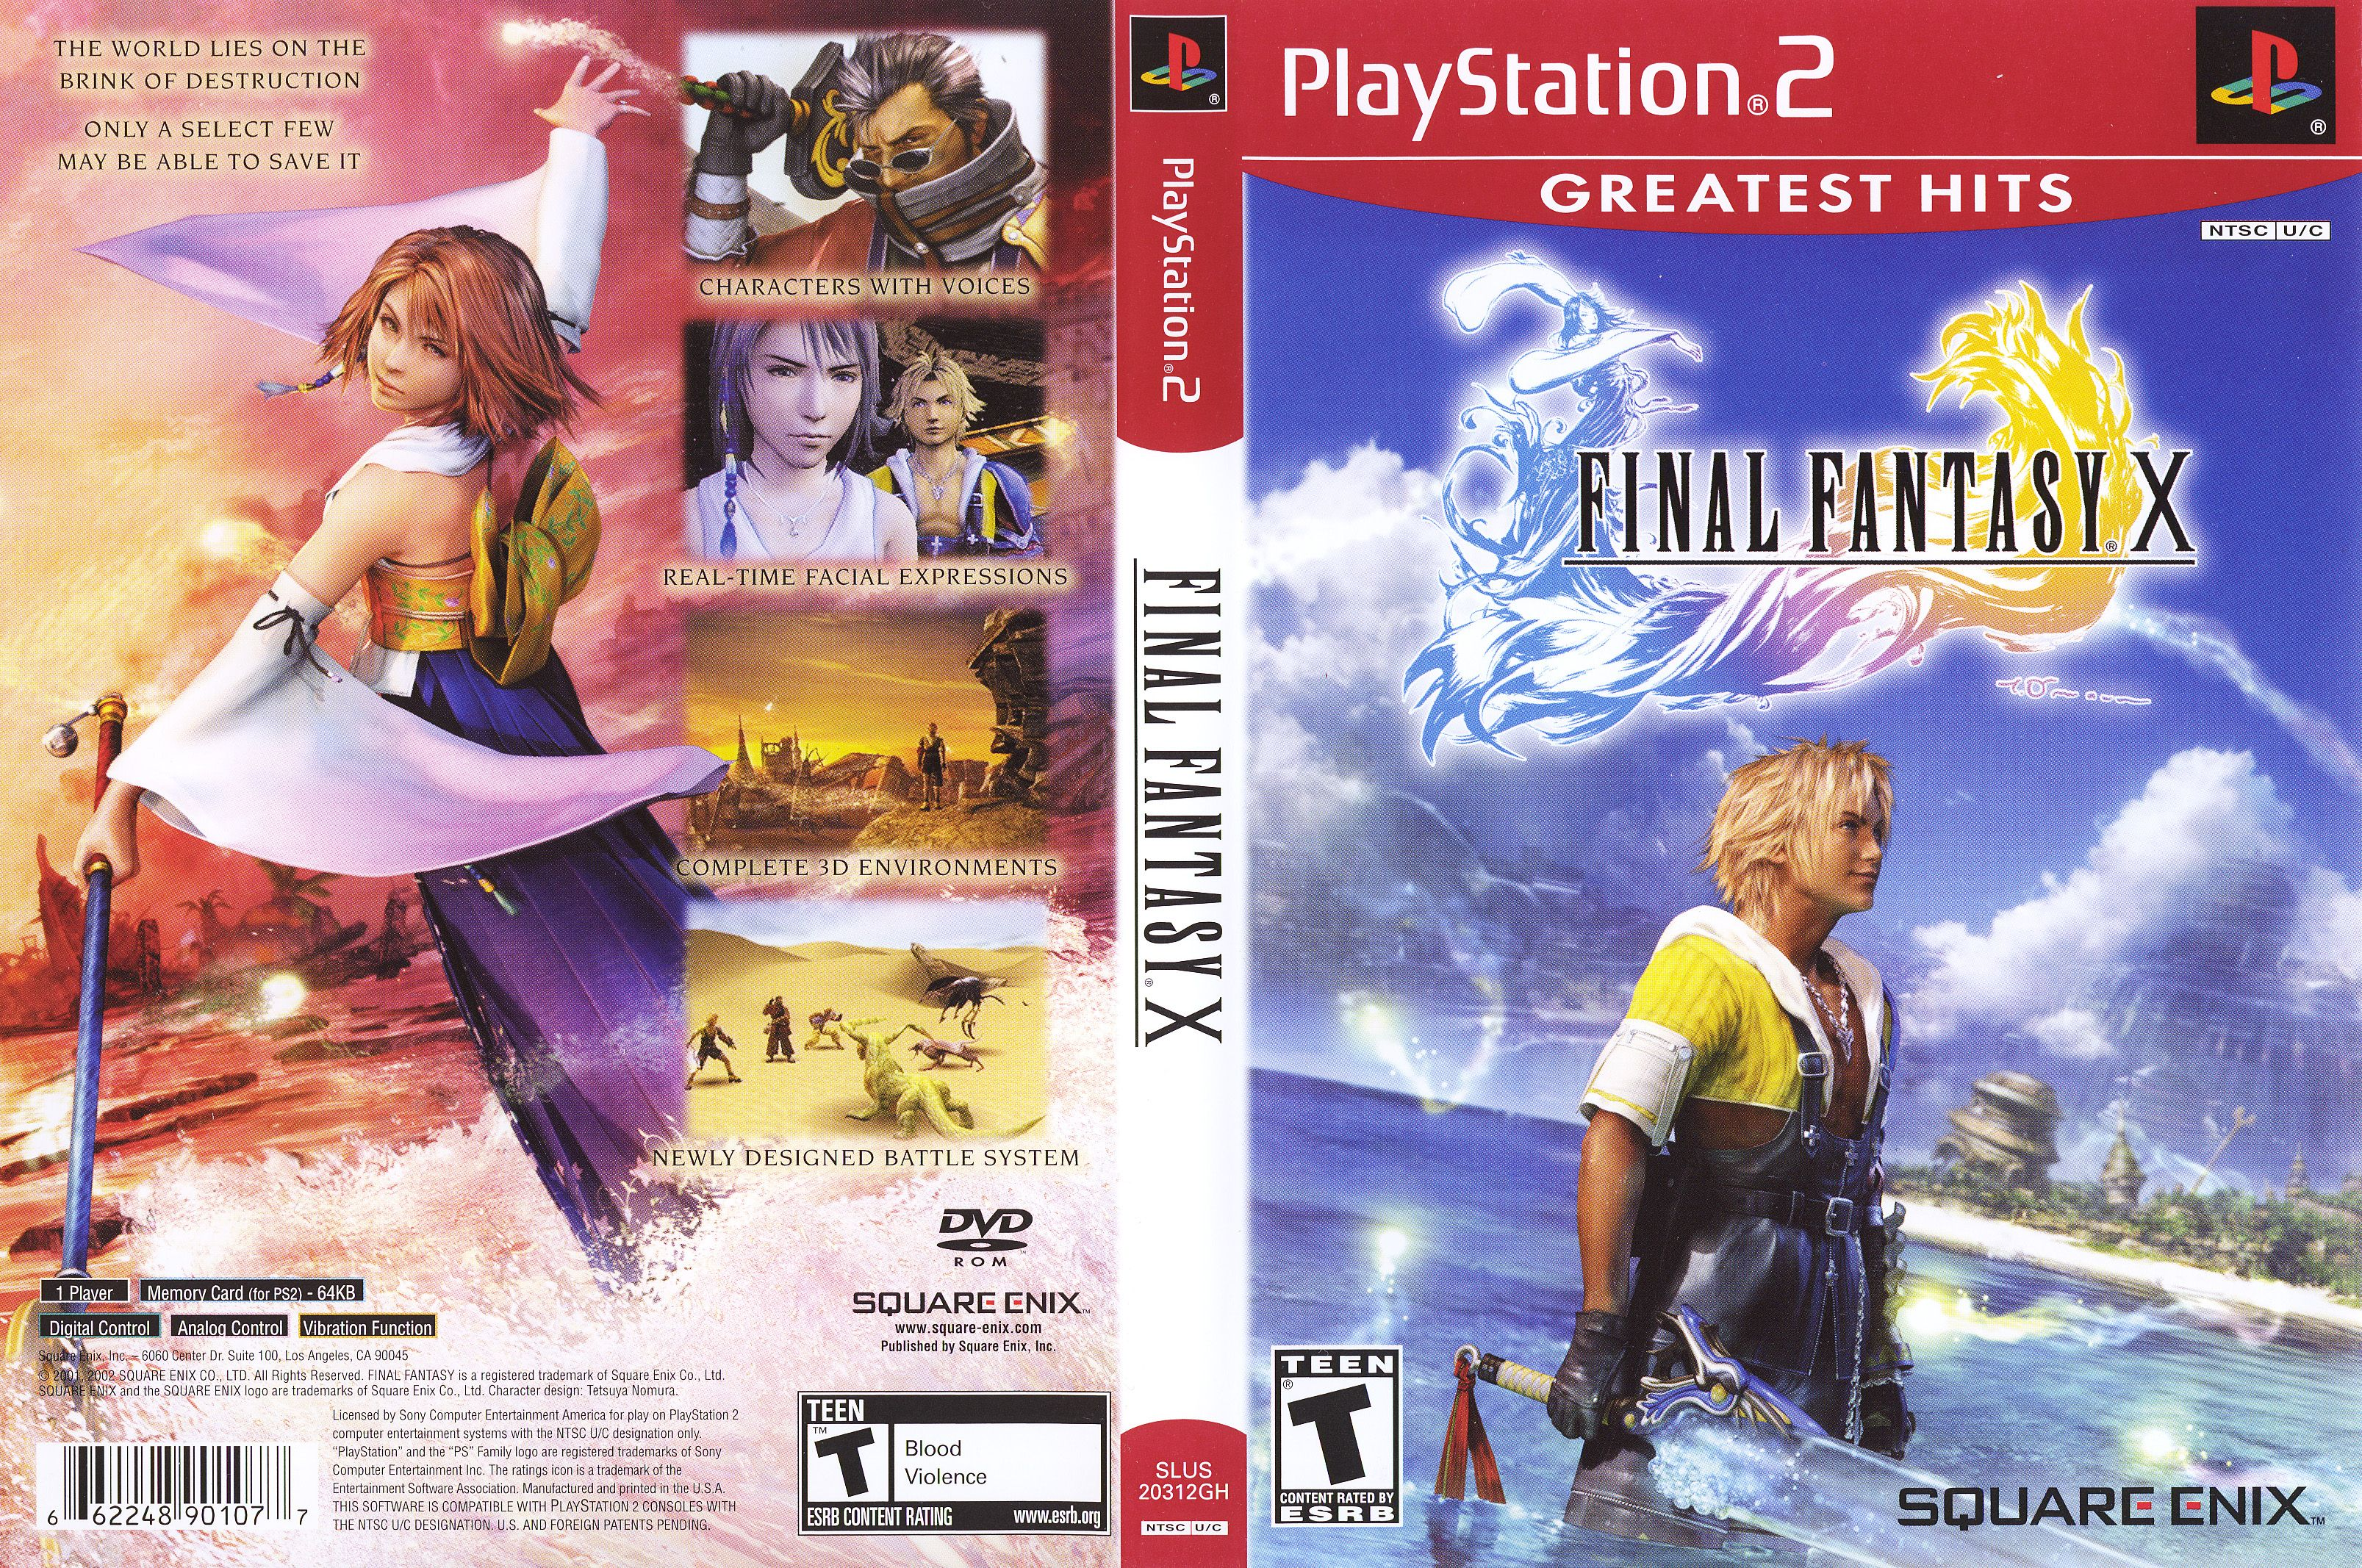 Pin By Malcolm On Playstation 2 Game Covers Final Fantasy X